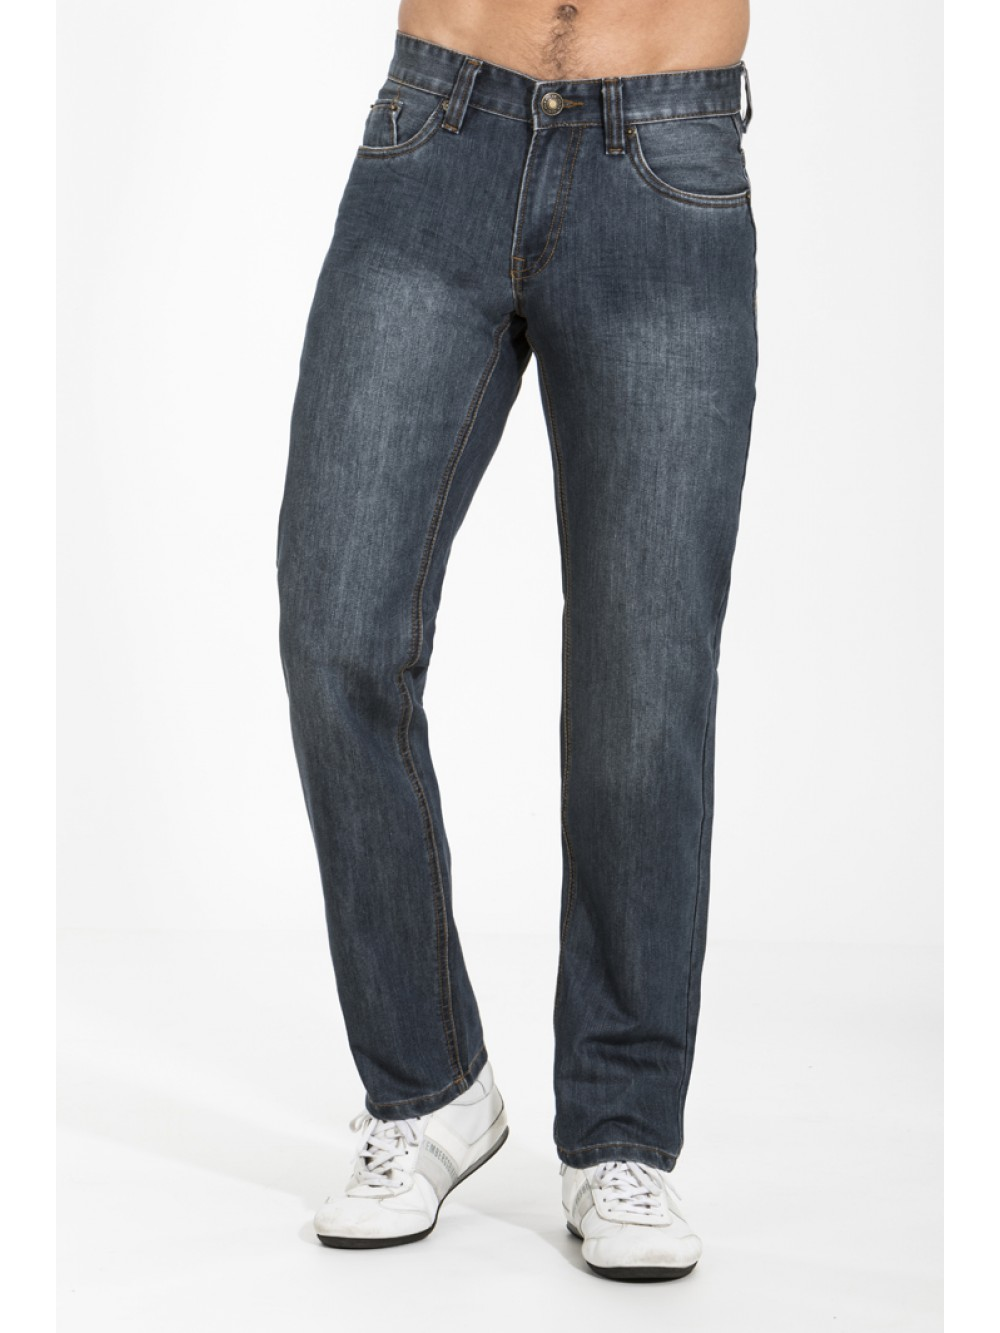 Denim Jeans JSM256 slim fit G589 blue